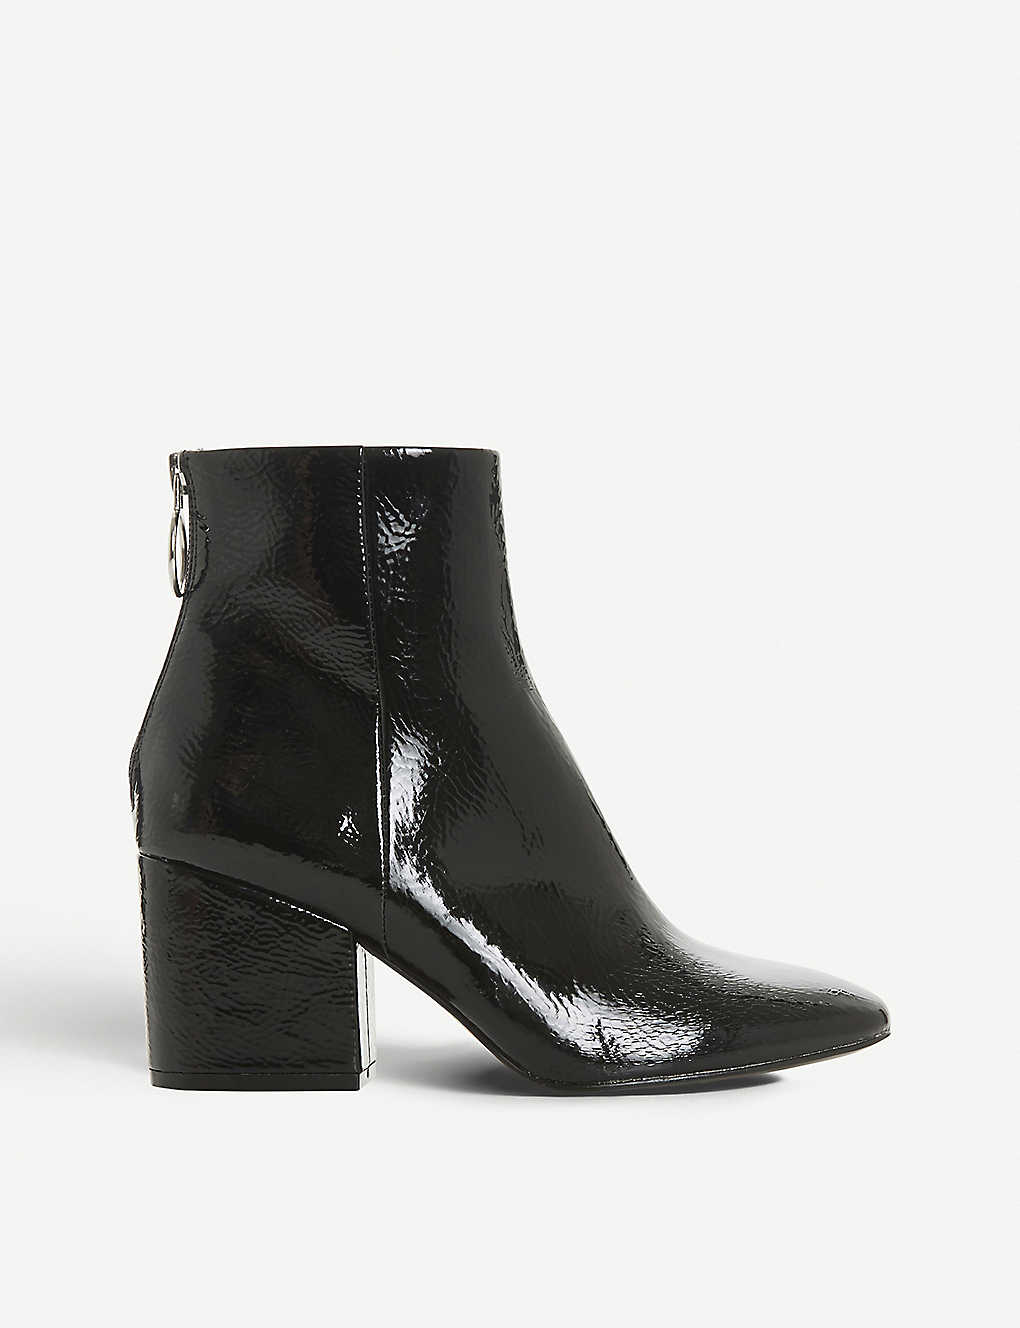 53eb0bce01a STEVE MADDEN - Break zip-detail patent ankle boots